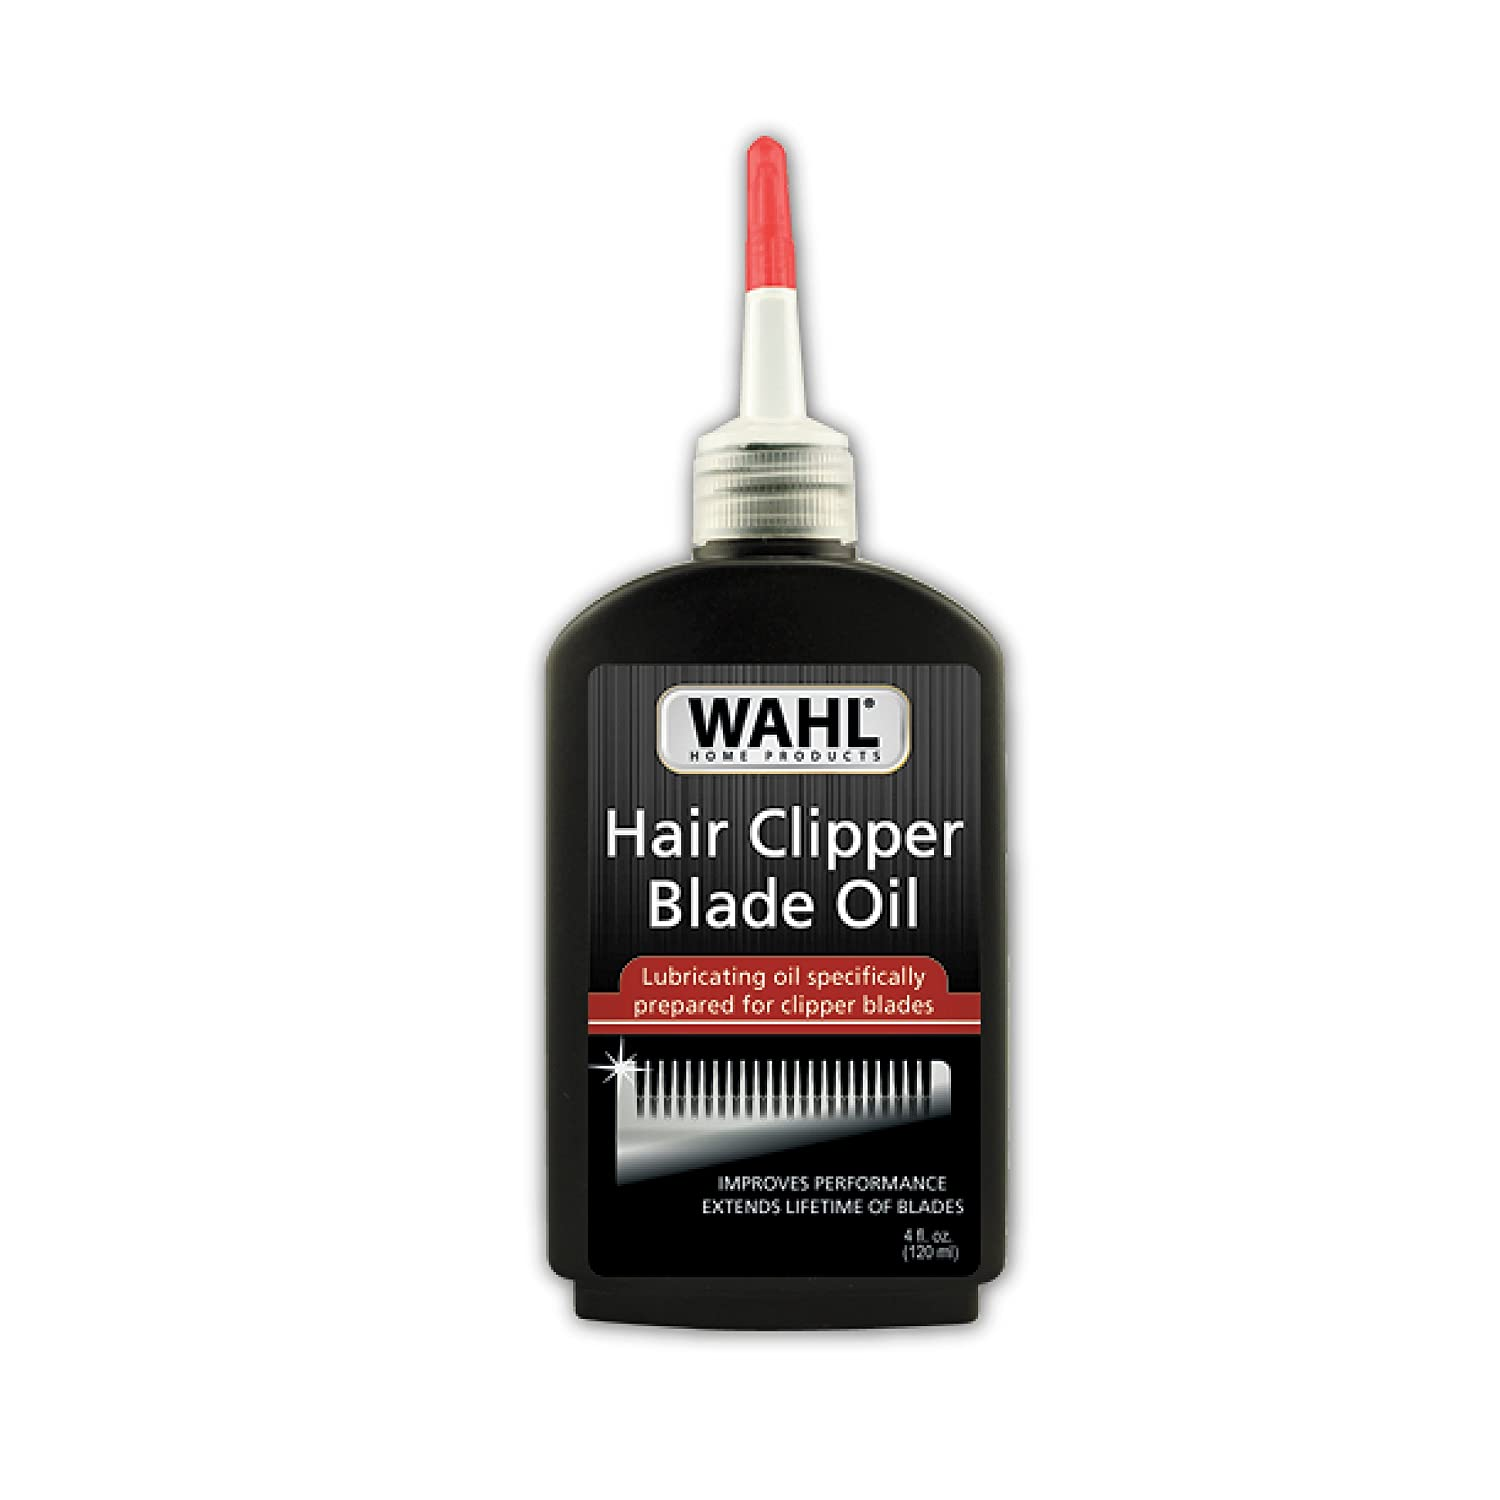 Wahl Hair Clipper Blade Oil 4 Fl. Oz#3310-300